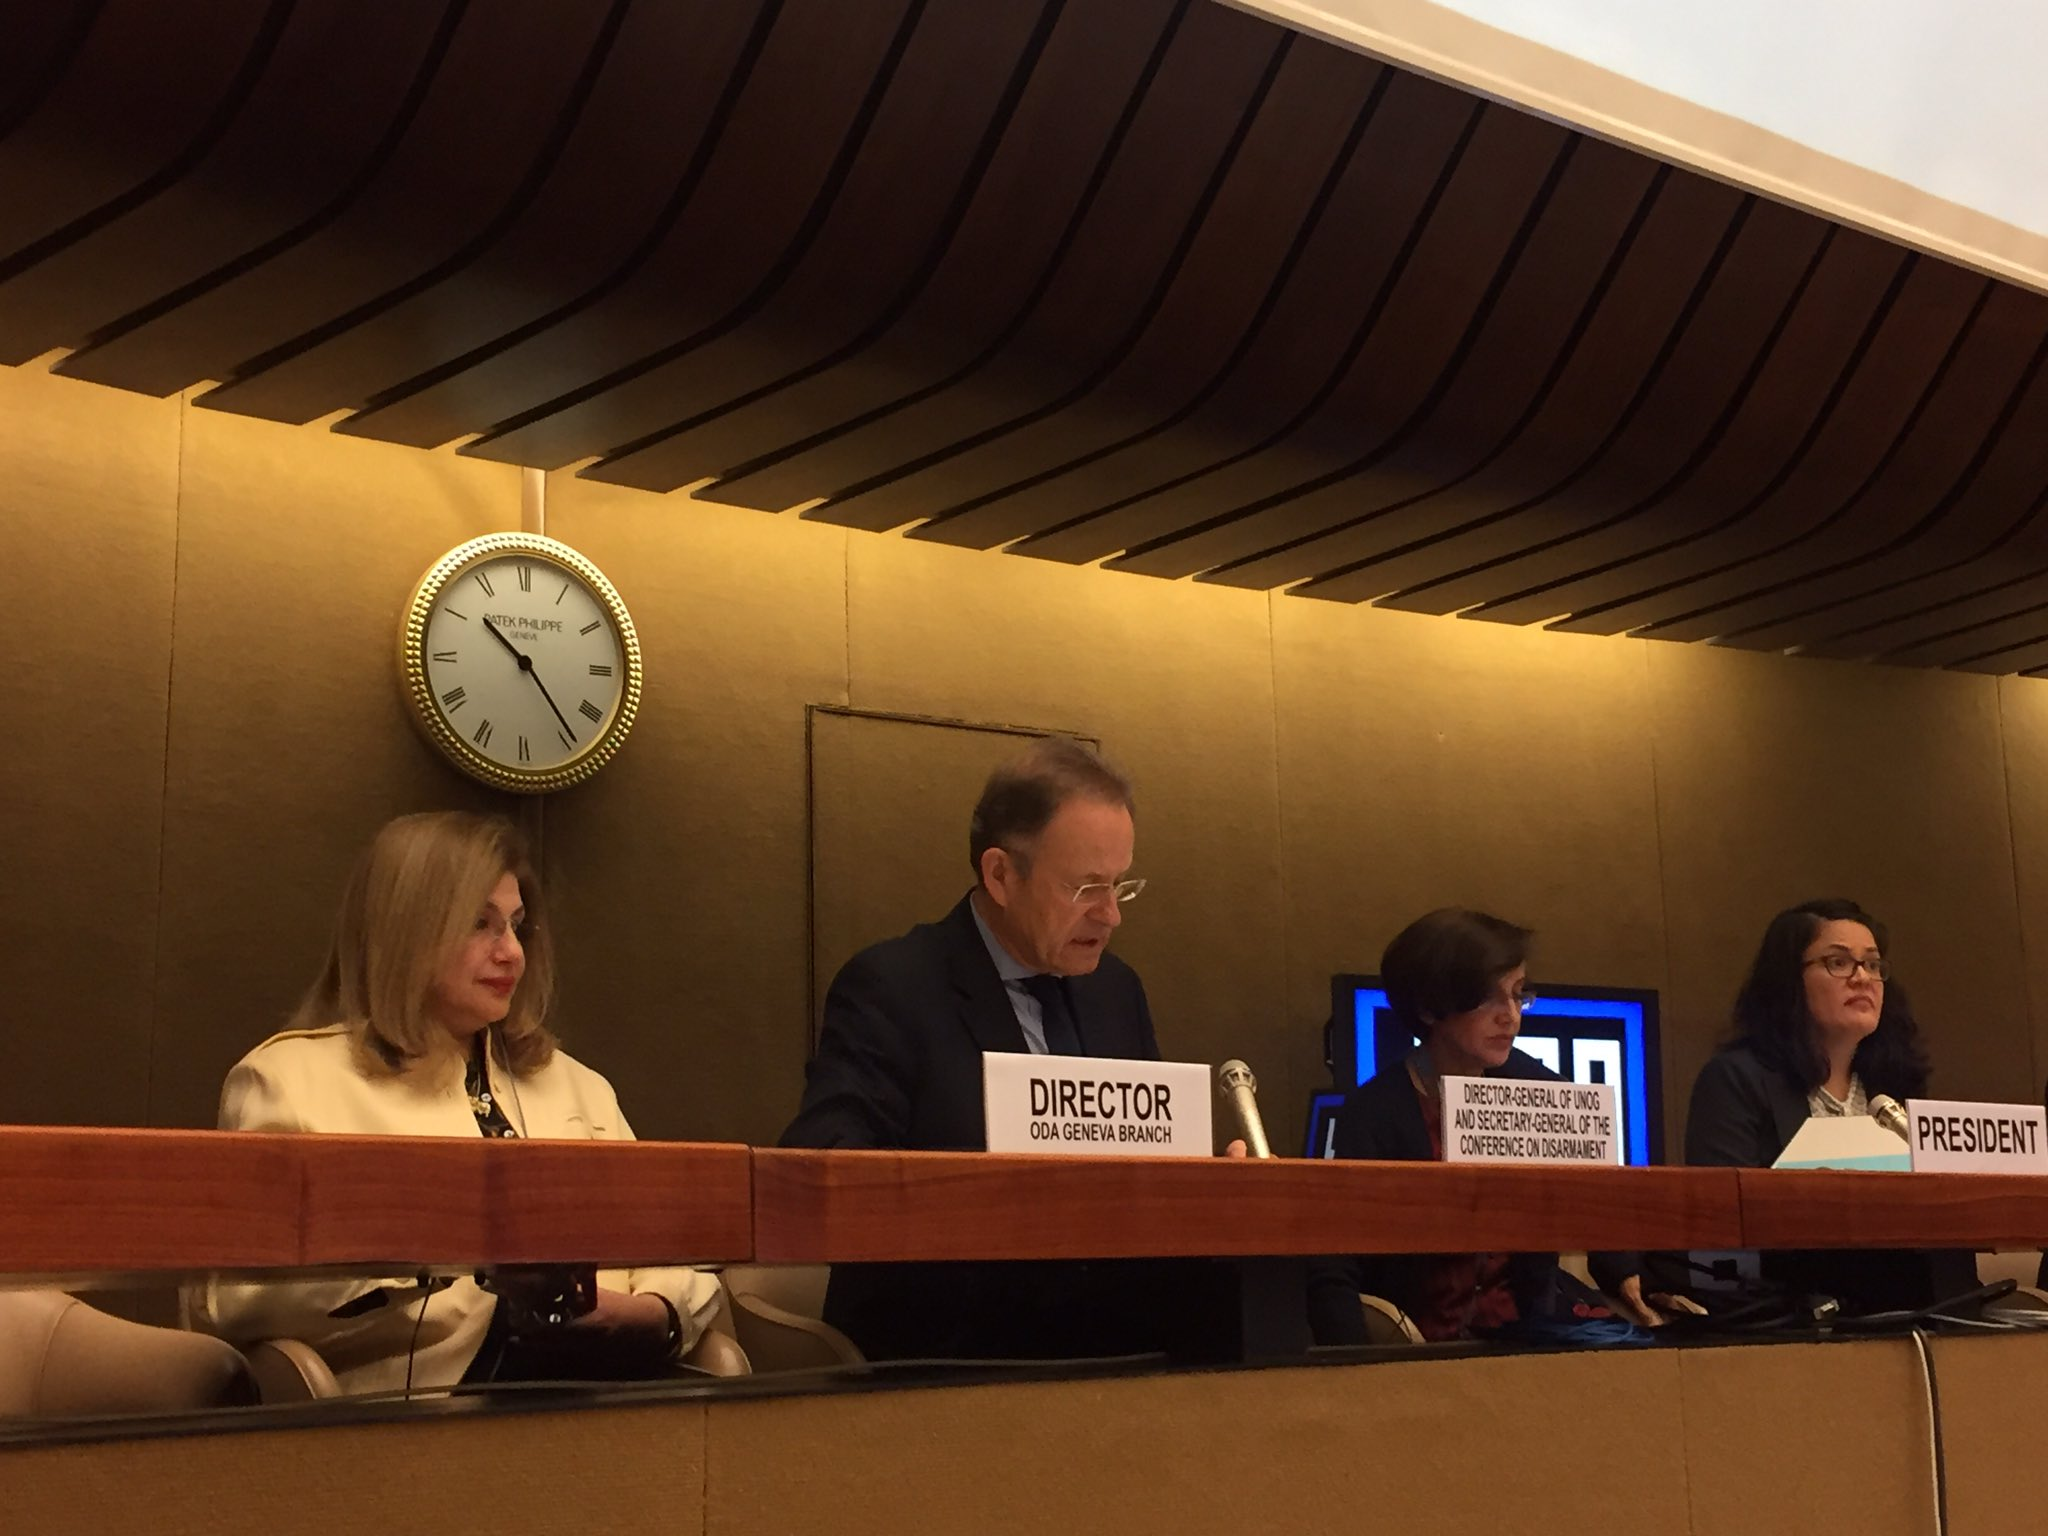 Remarks by @UNOG_DG urging states to take preemptive action by #CCWUN states to address concerns over lethal autonomous weapons systems https://t.co/hH9ZAxsMAh